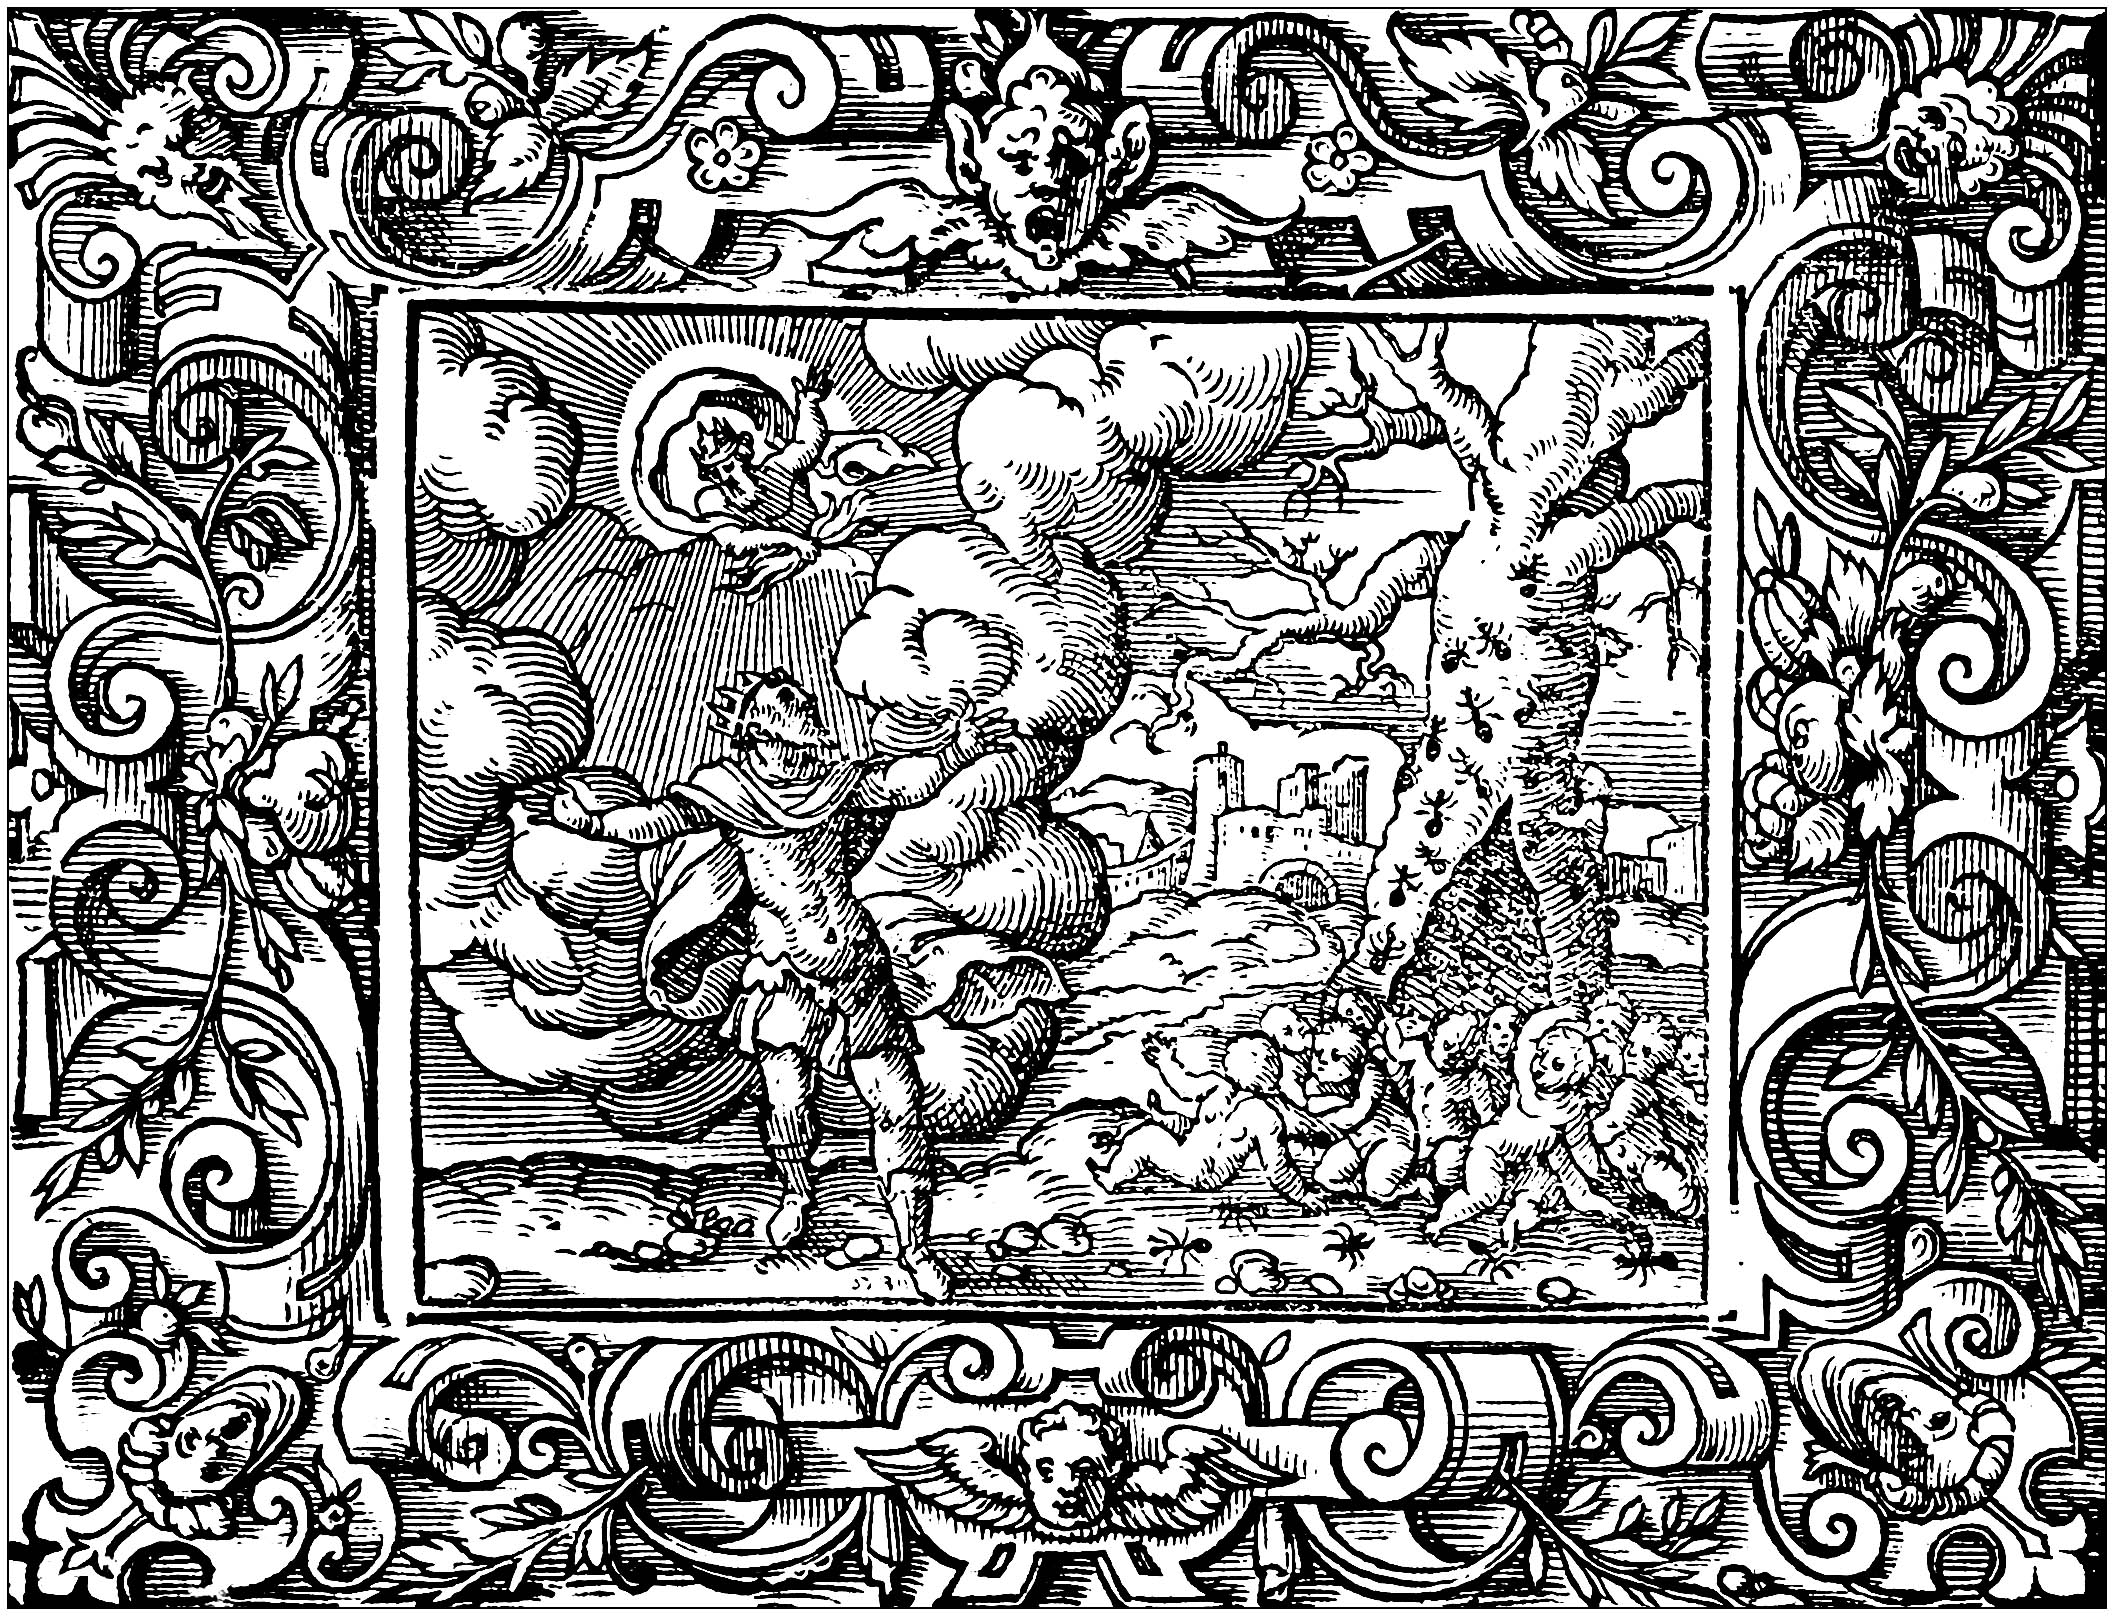 Coloring page created from a drawing by Virgil Solis (1514 - 1562), inspired by 'The Metamorphoses', a Latin poem by the Roman poet Ovid (first century)